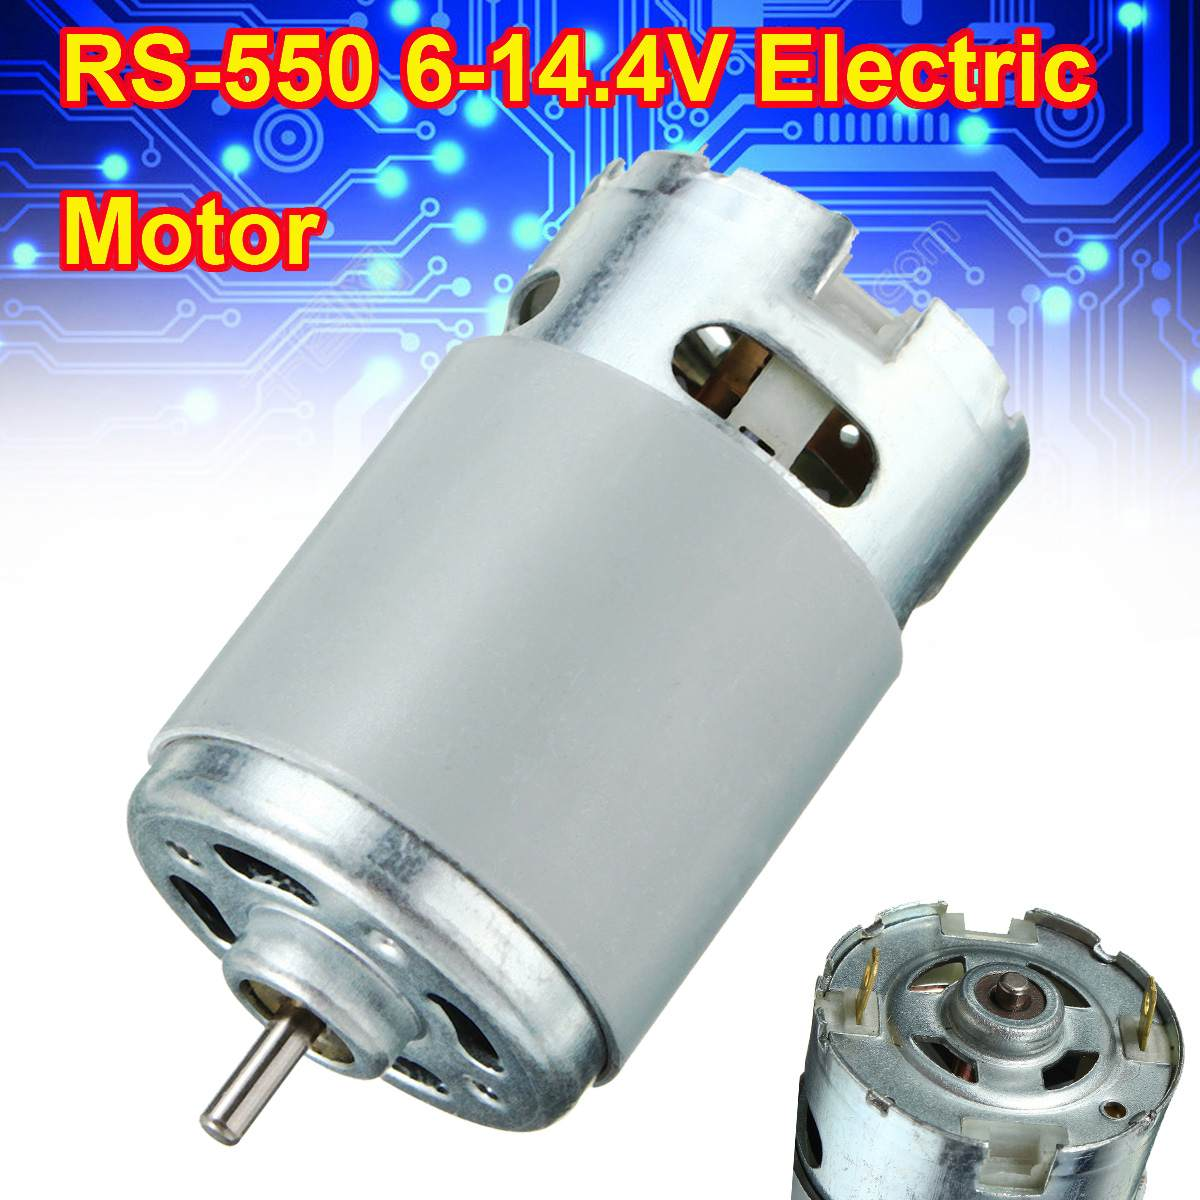 RS-550 Motor 6-14.4V 3.65A For Various Cordless Screwdriver Motors 22800/min Replacement Electric Drill Driver Screwdriver